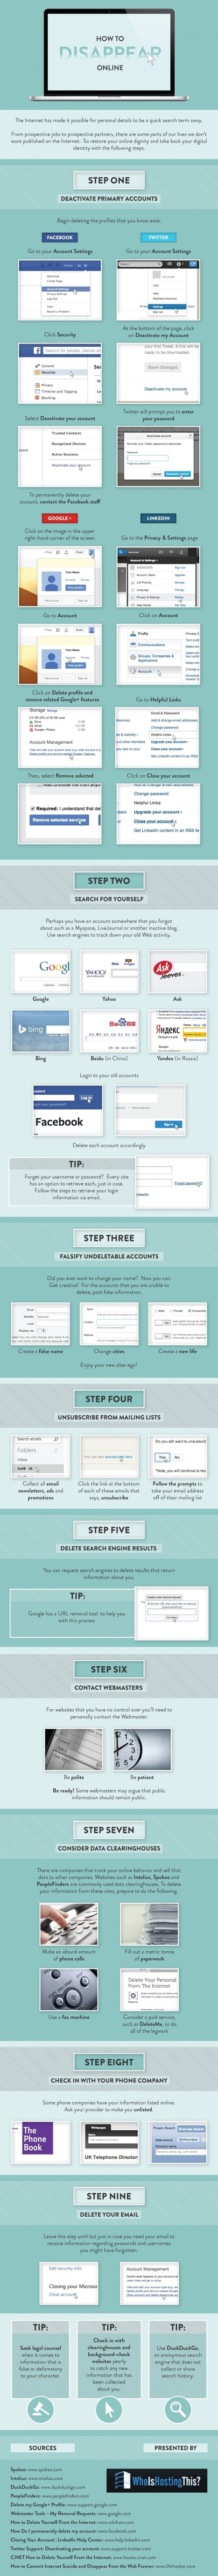 How to Disappear Online in 9 Steps [Infographic] | Social Media Strategies | Scoop.it